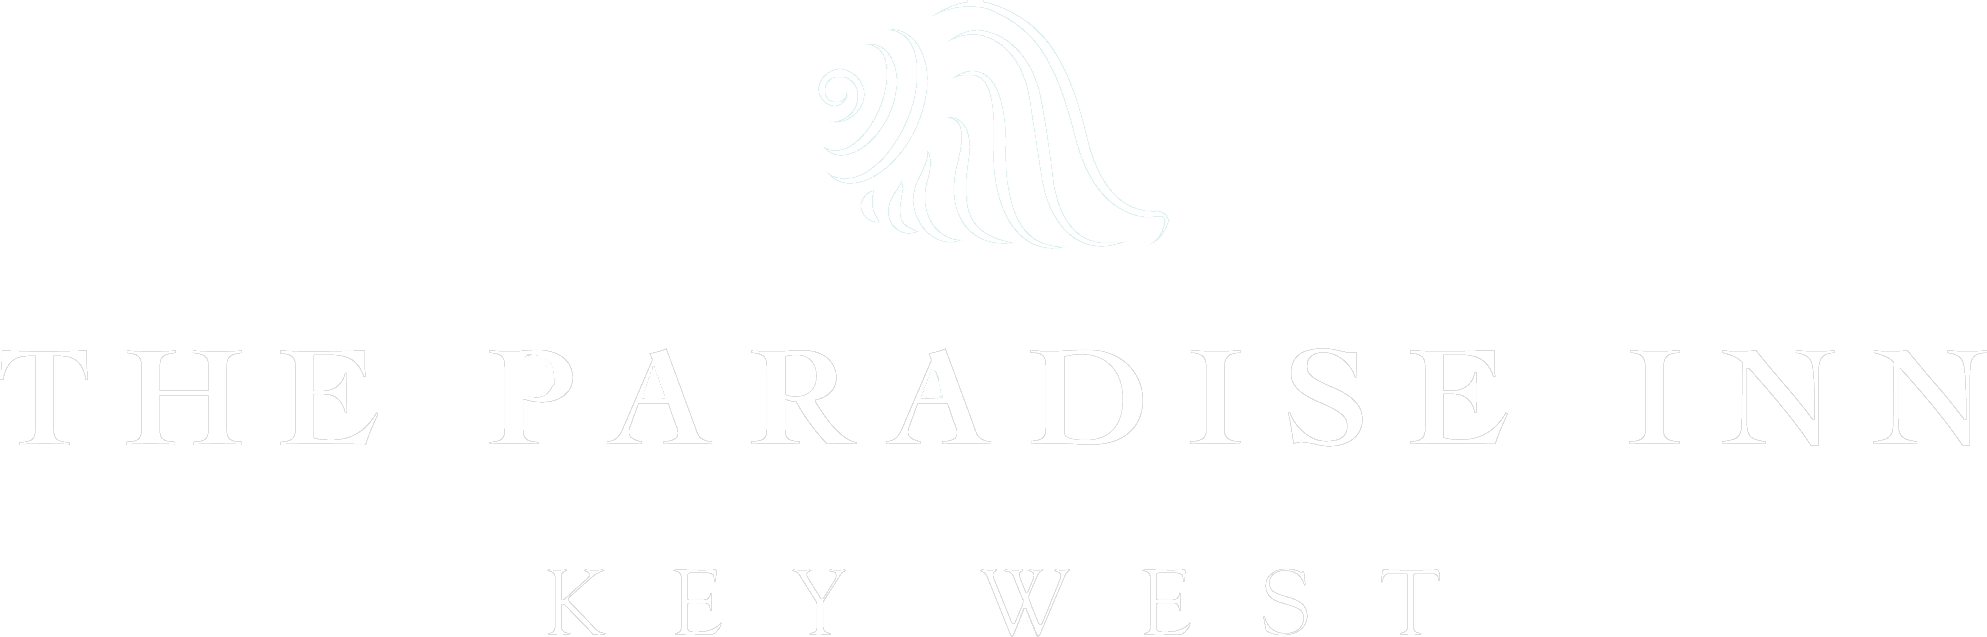 The Paradise Inn logo.